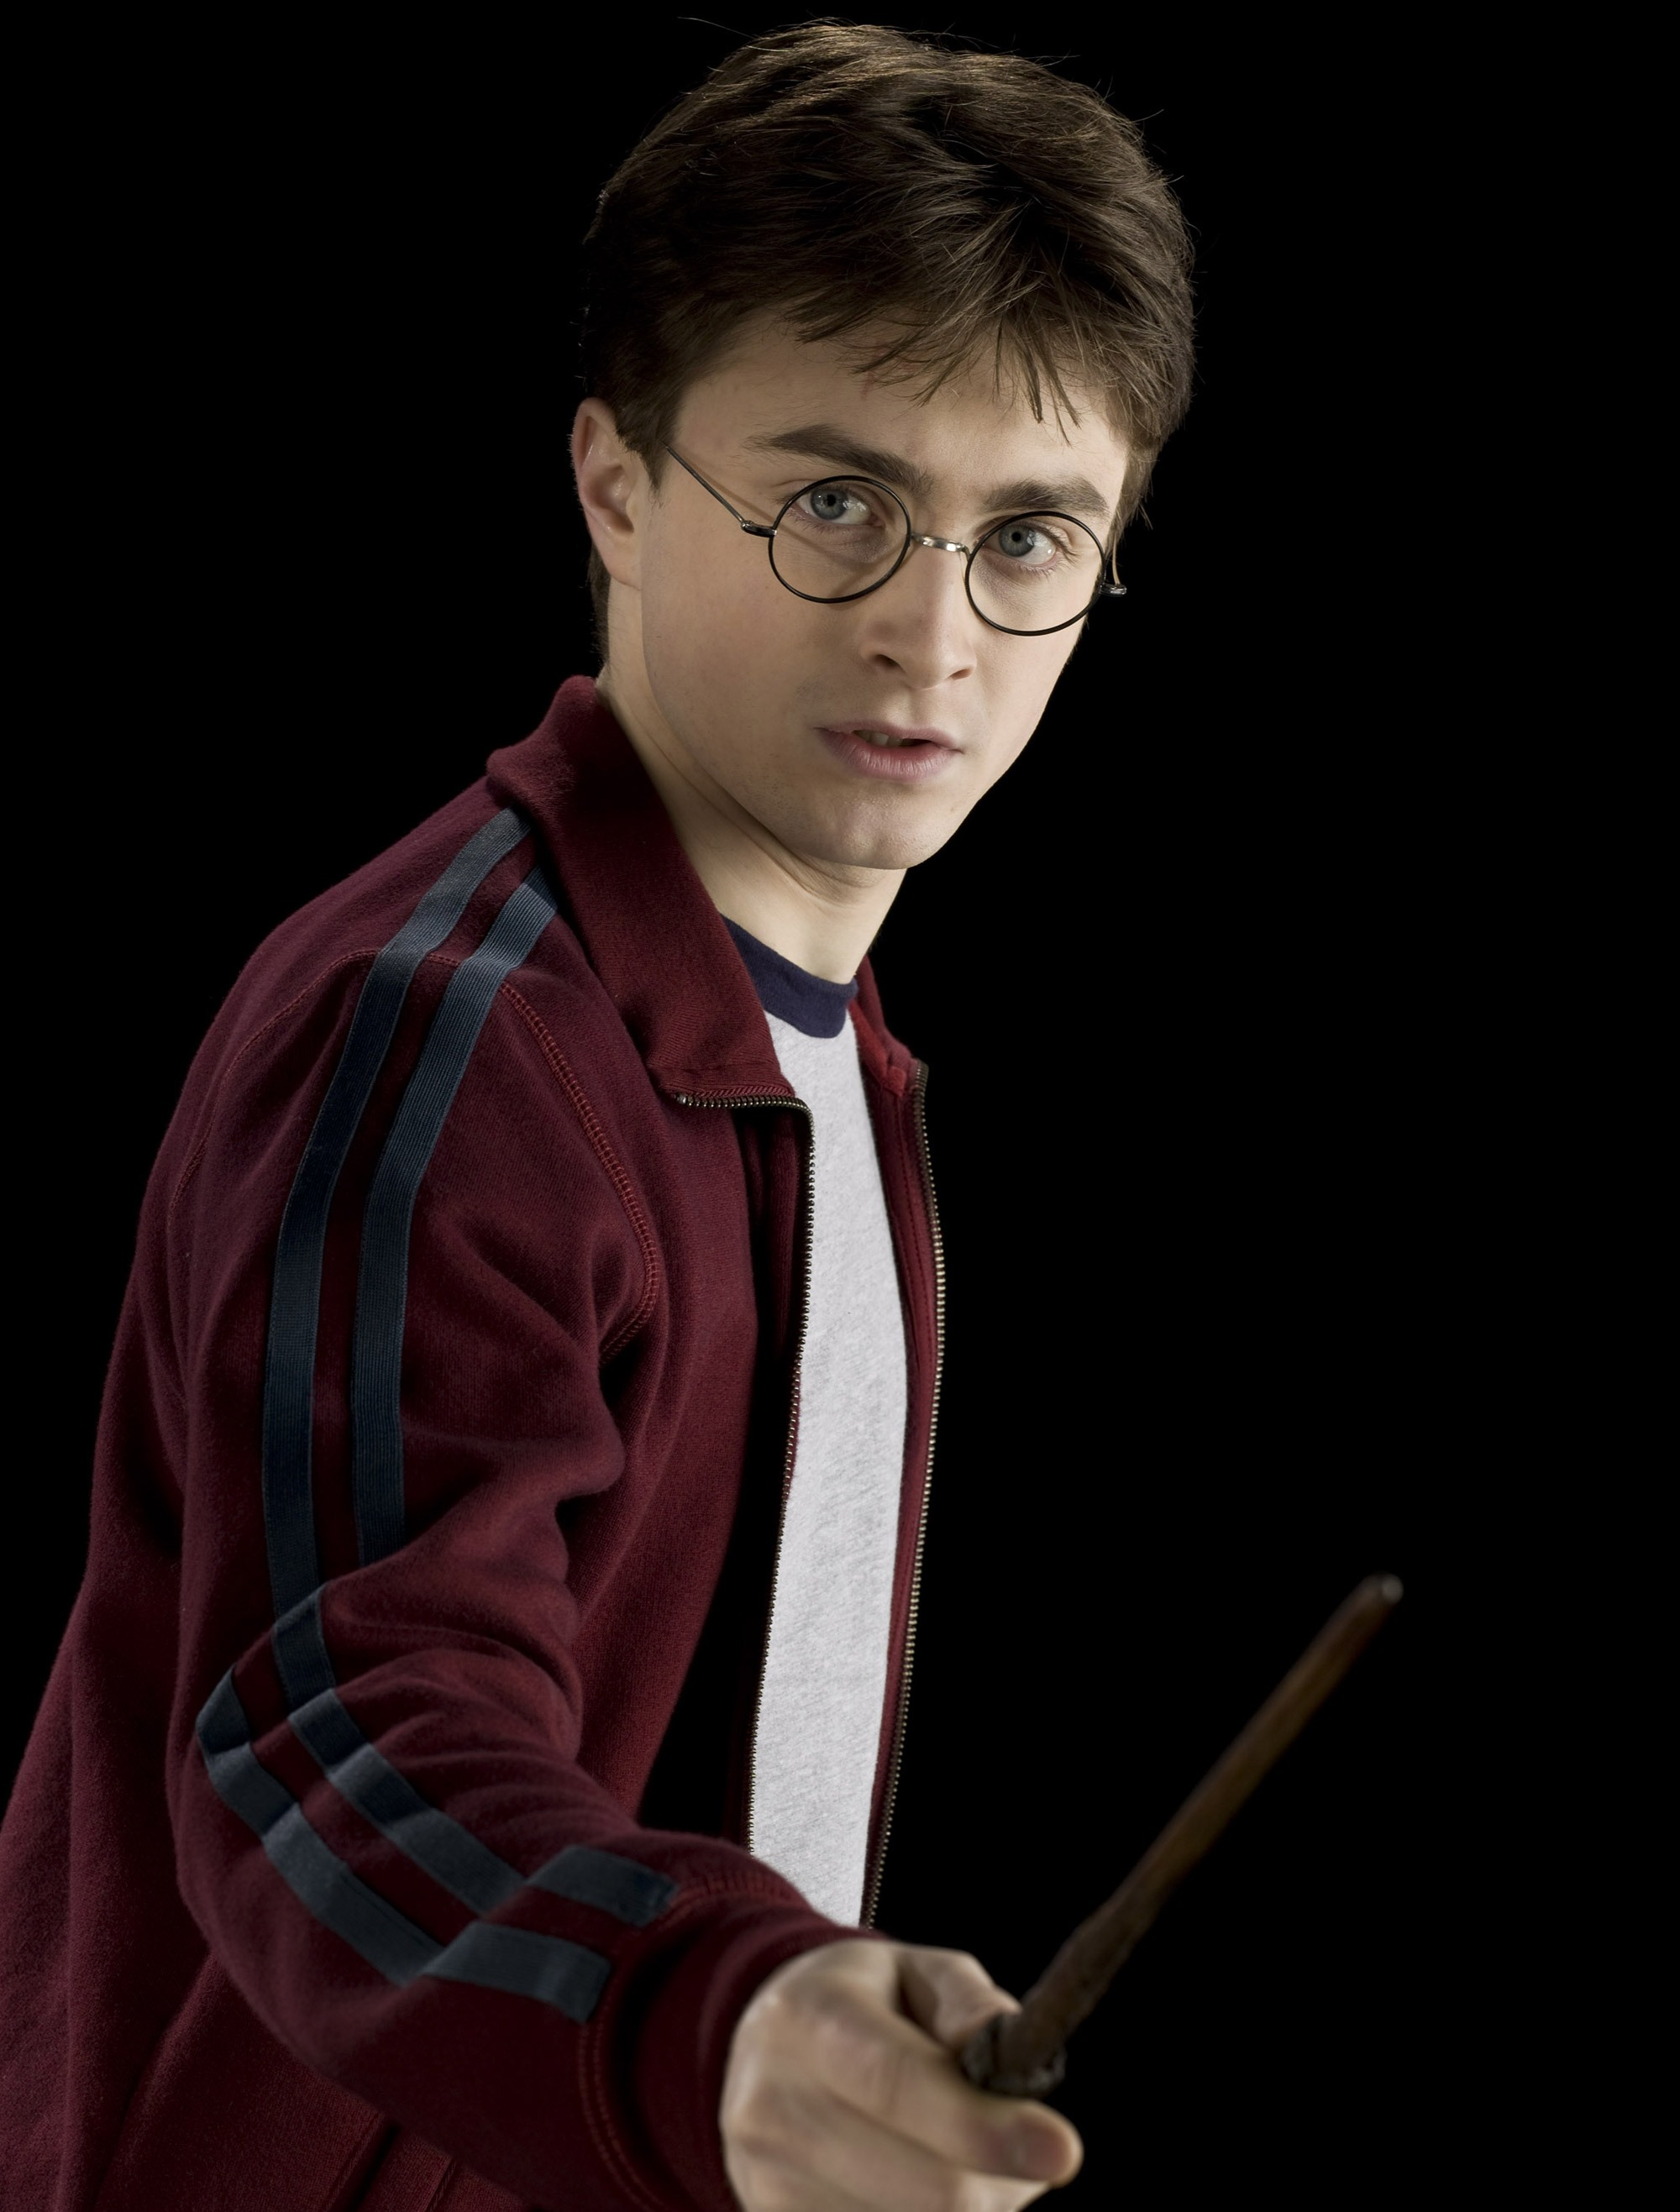 Image - Harry Potter (HBP promo) 1.jpg - Harry Potter Wiki